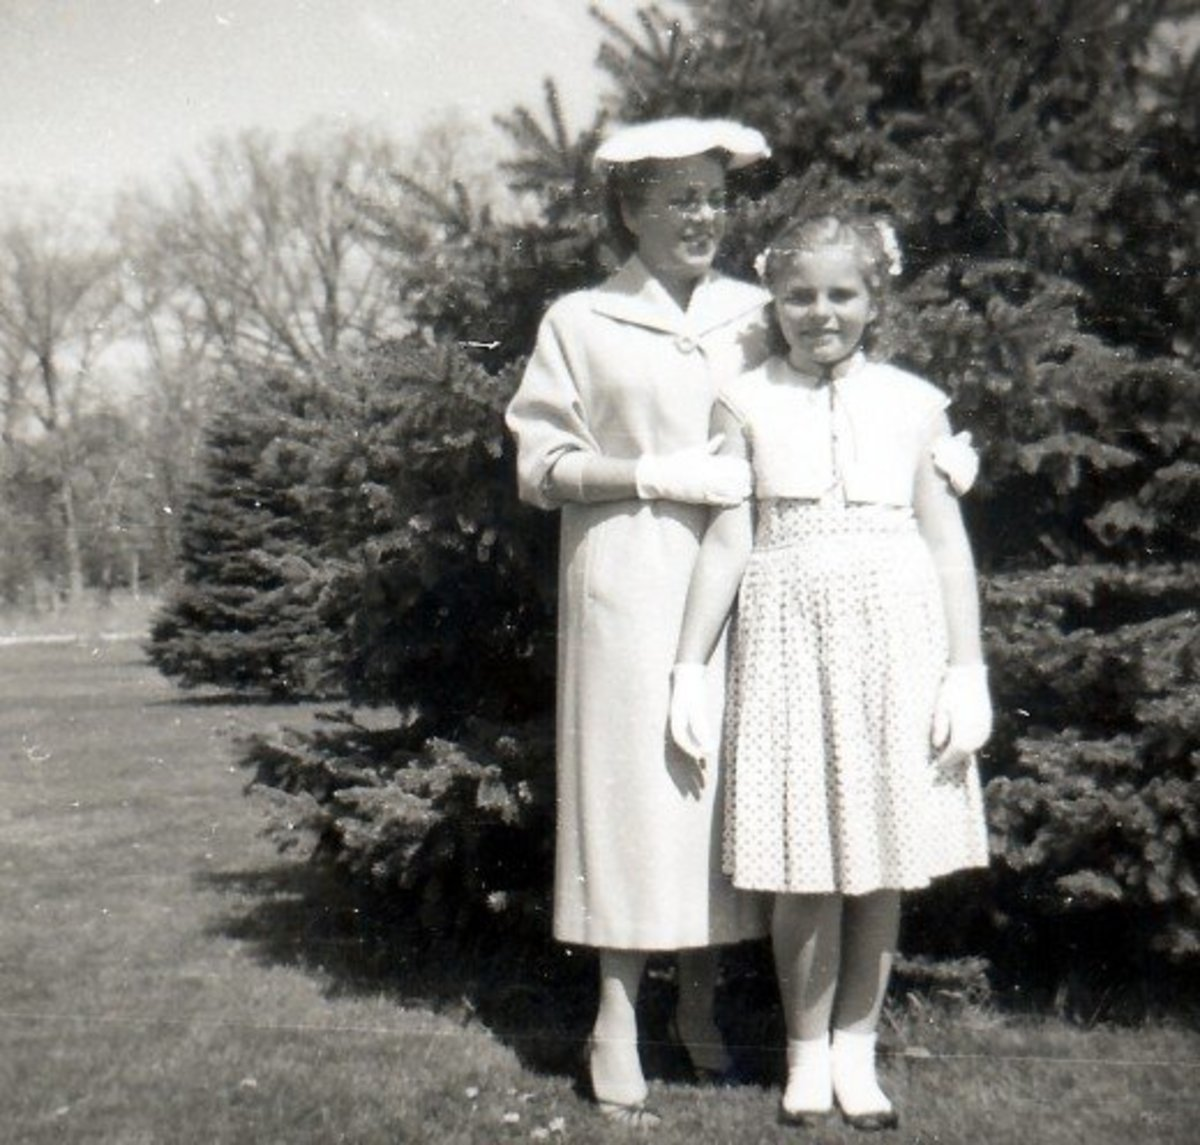 My mother and I in Wisconsin dressed for attending church in the 1950s